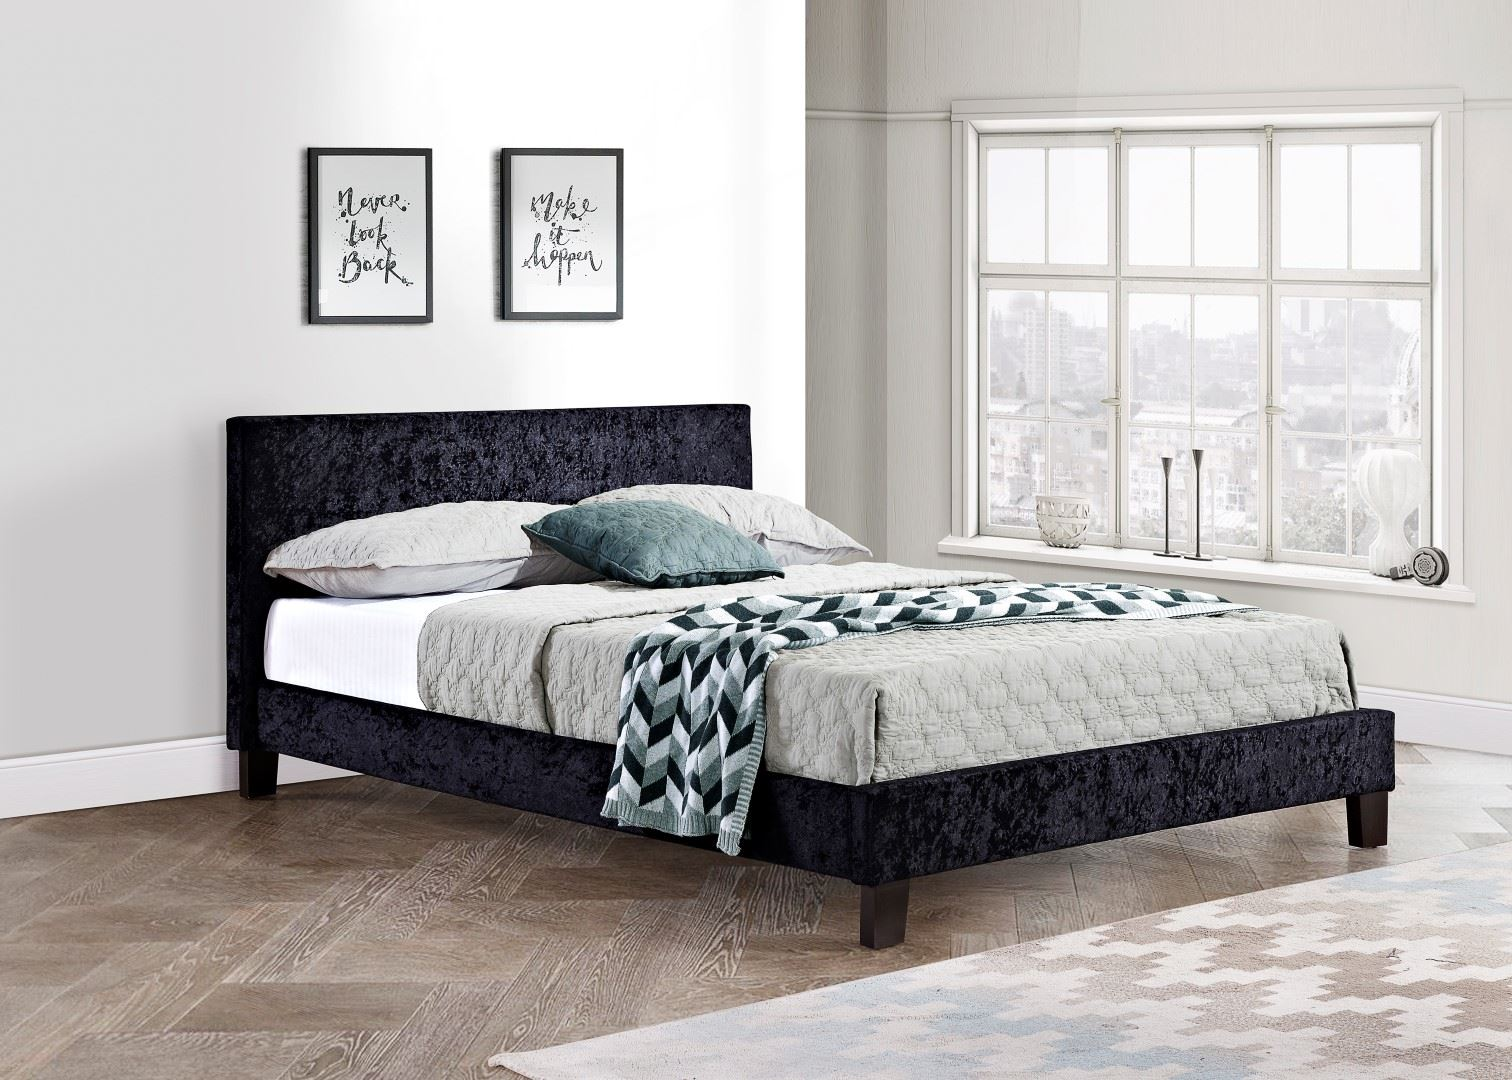 Birlea Berlin Black Crushed Velvet Bed Small Double 4FT 120CM Frame Upholstered